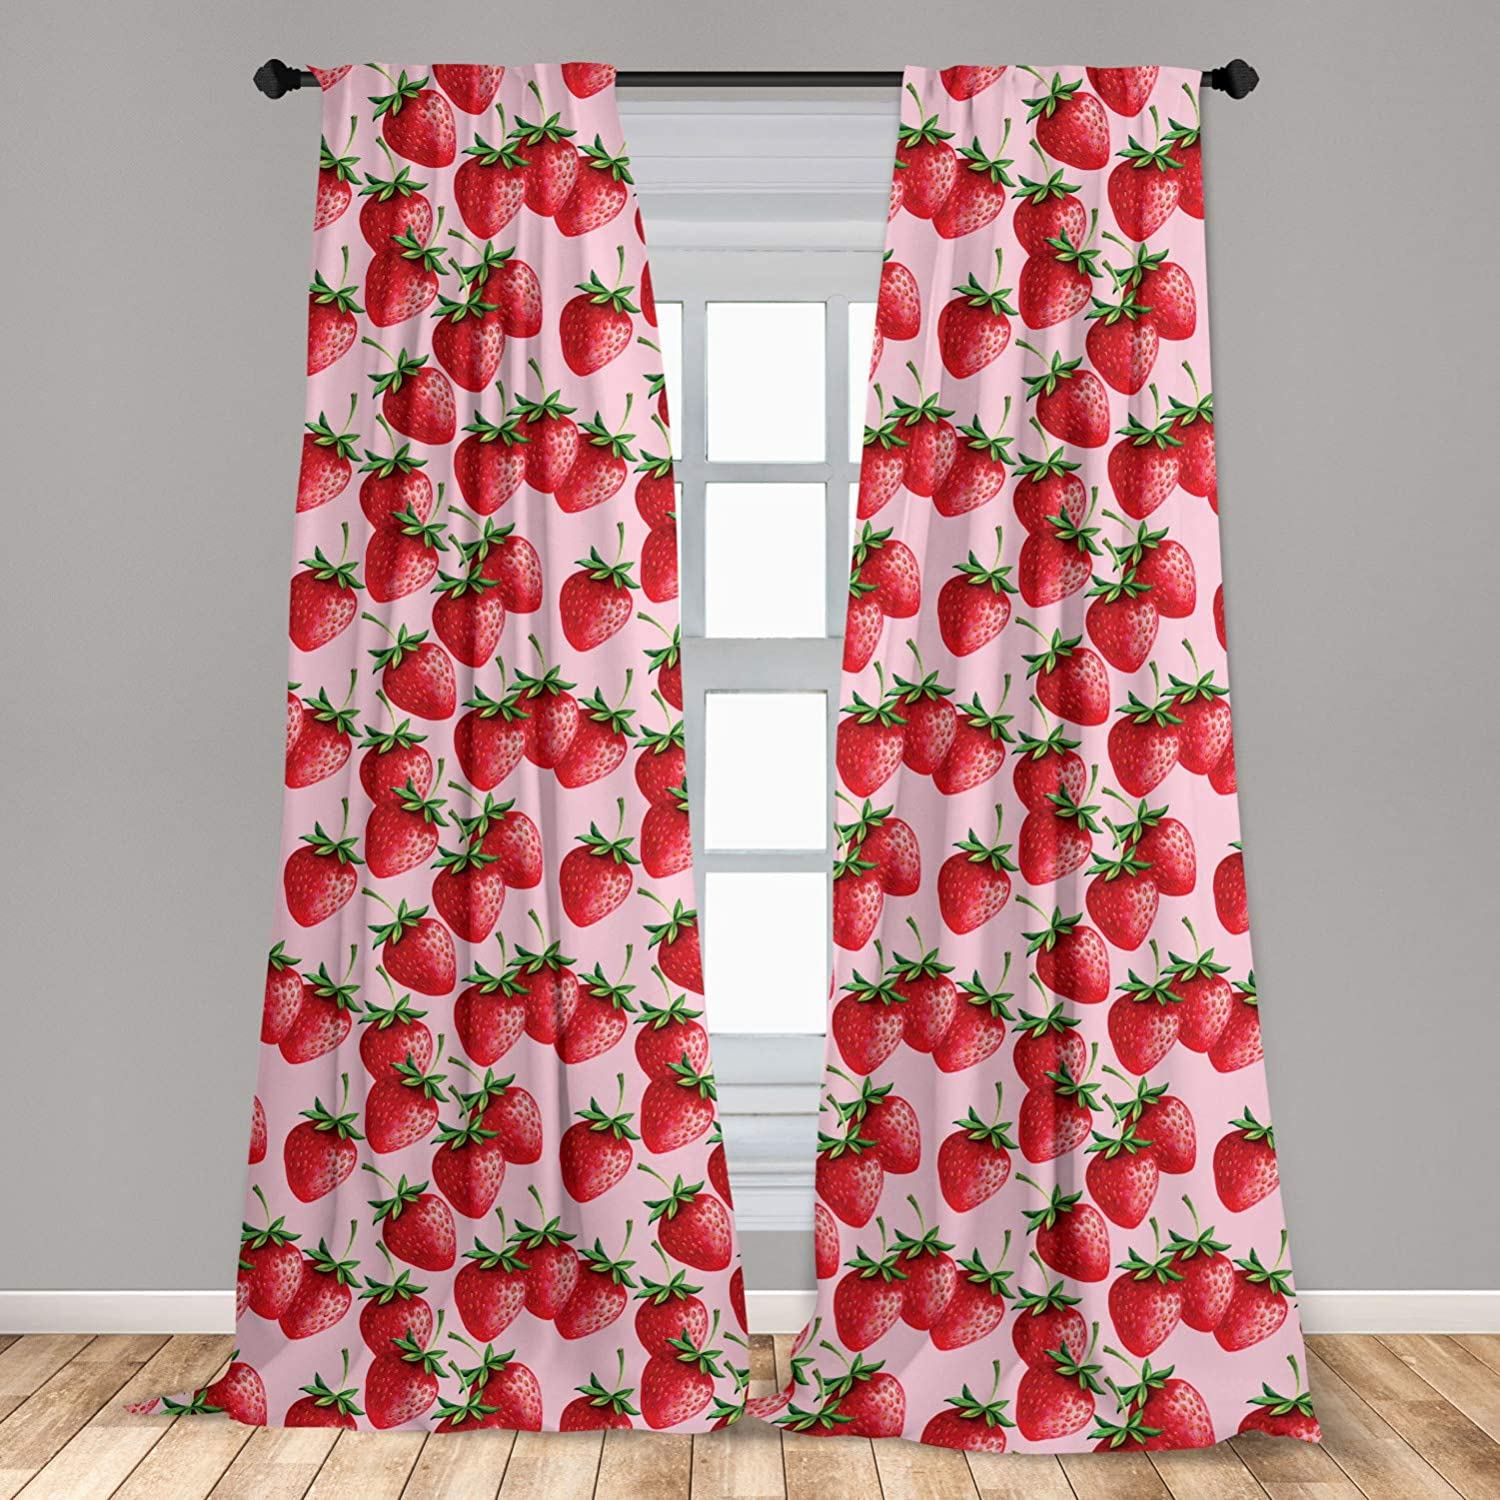 Ambesonne Red Curtains, Delicious Big Strawberries on Pink Background Tasty Juicy Ripe Summer Fruits, Window Treatments 2 Panel Set for Living Room Bedroom Decor, 56